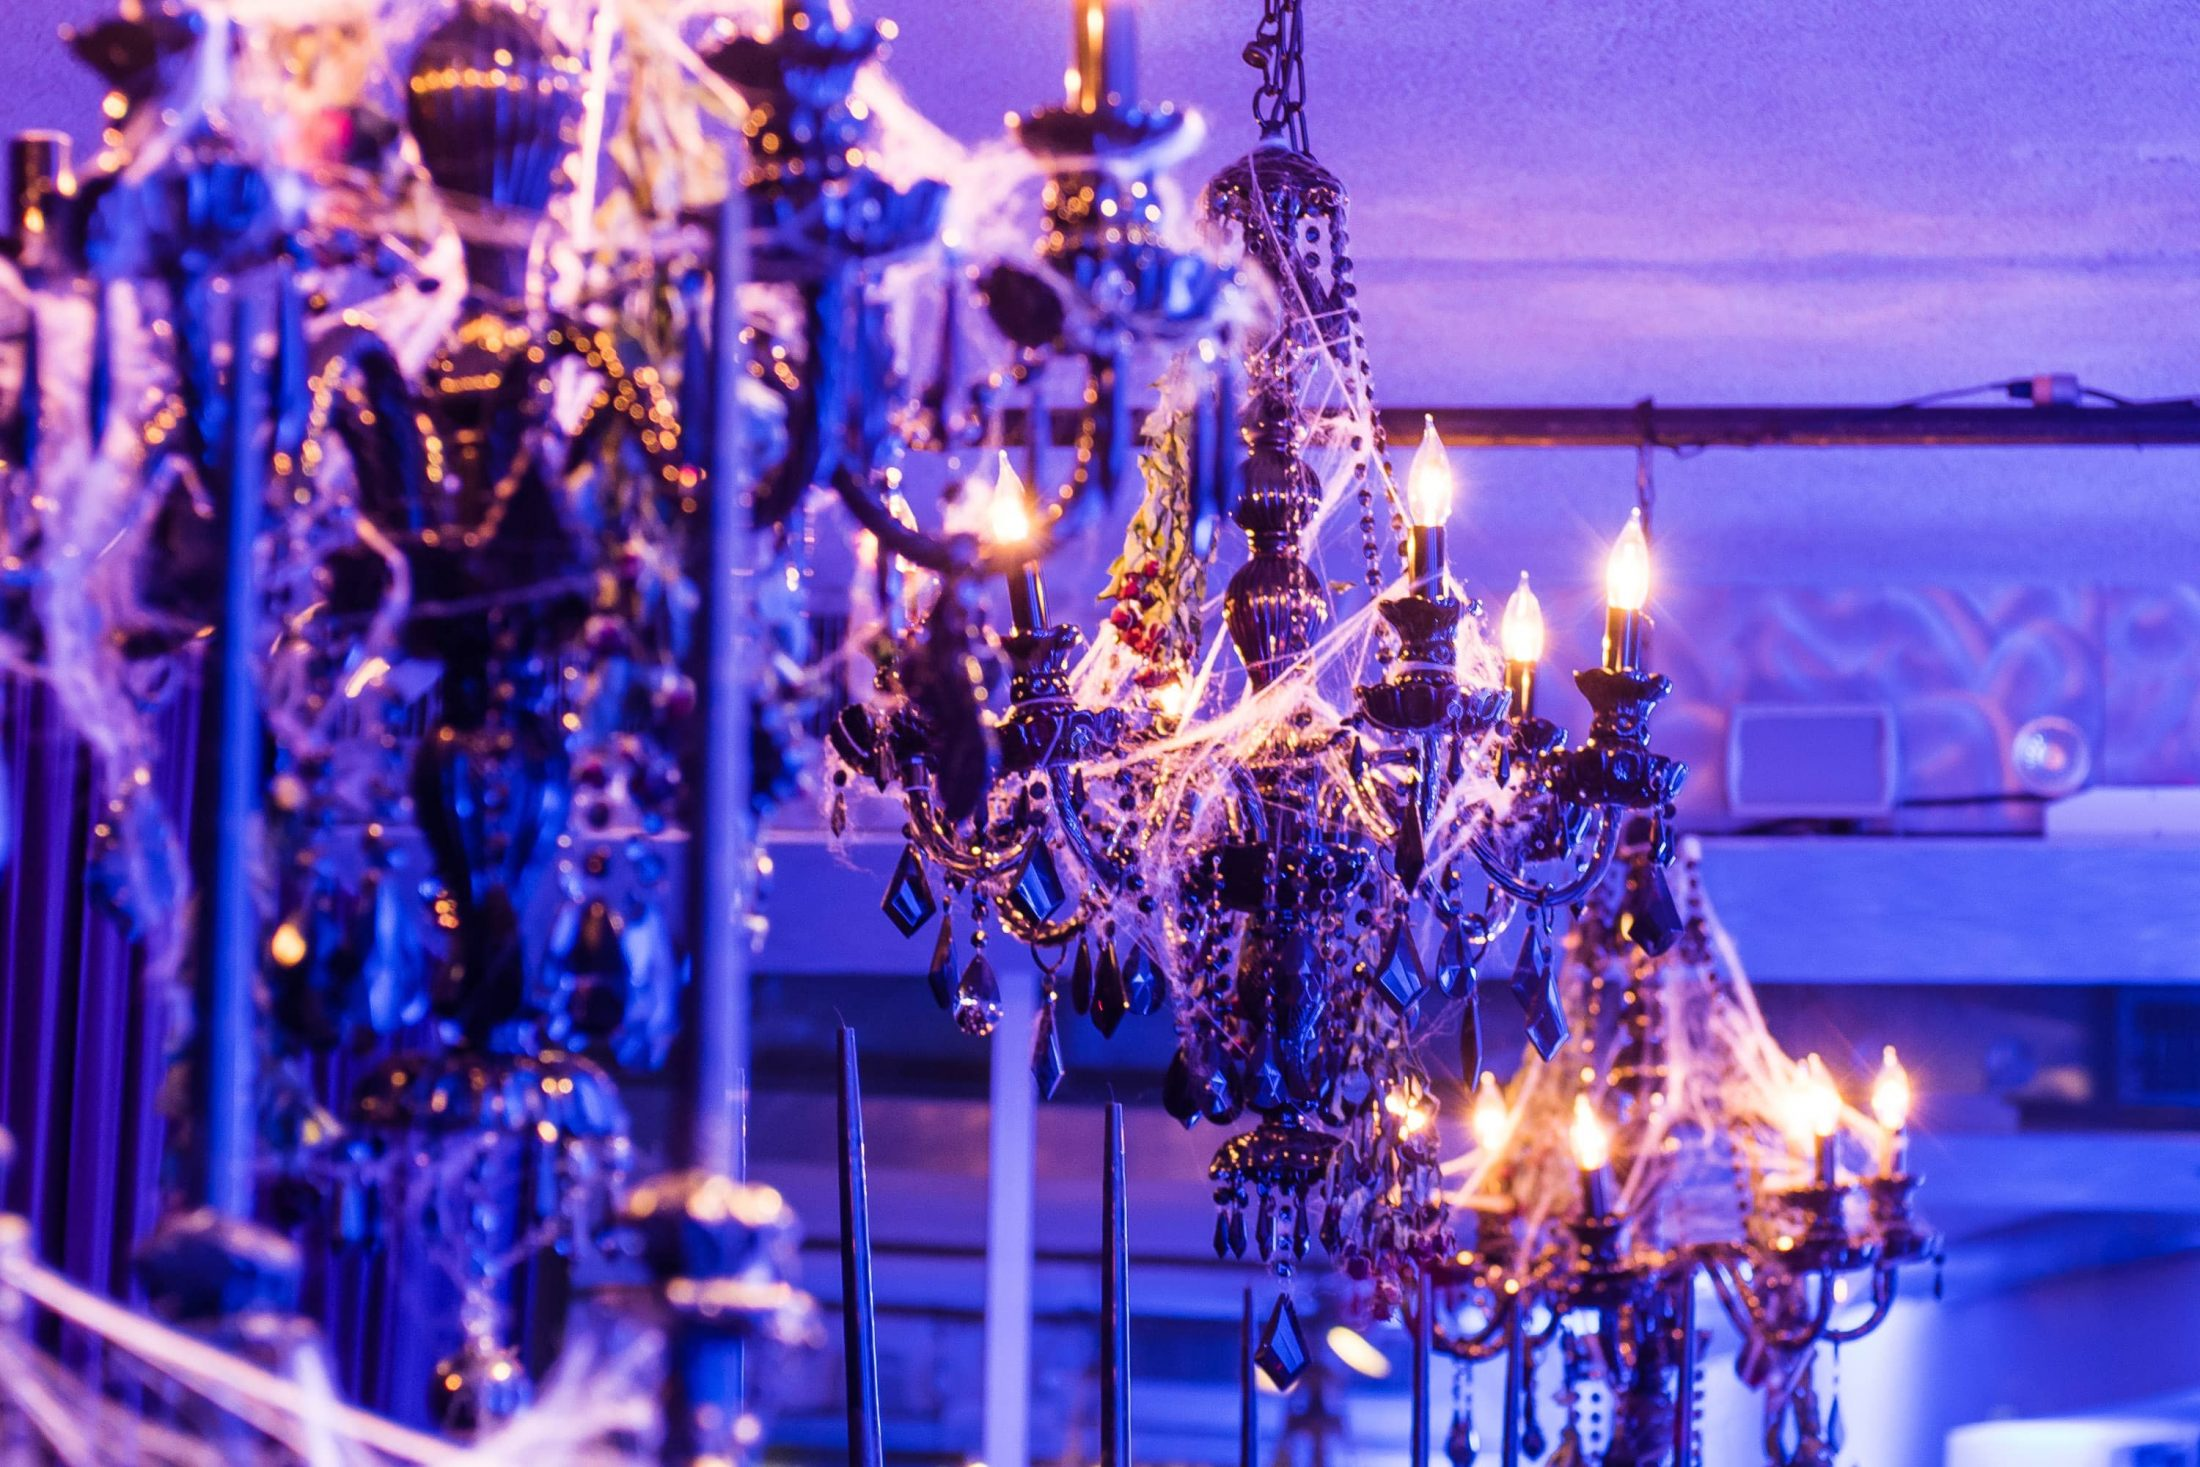 Cobwebbed black chandeliers at this epic halloween party at The Standard in NYC | Photo by Gruber Photographers